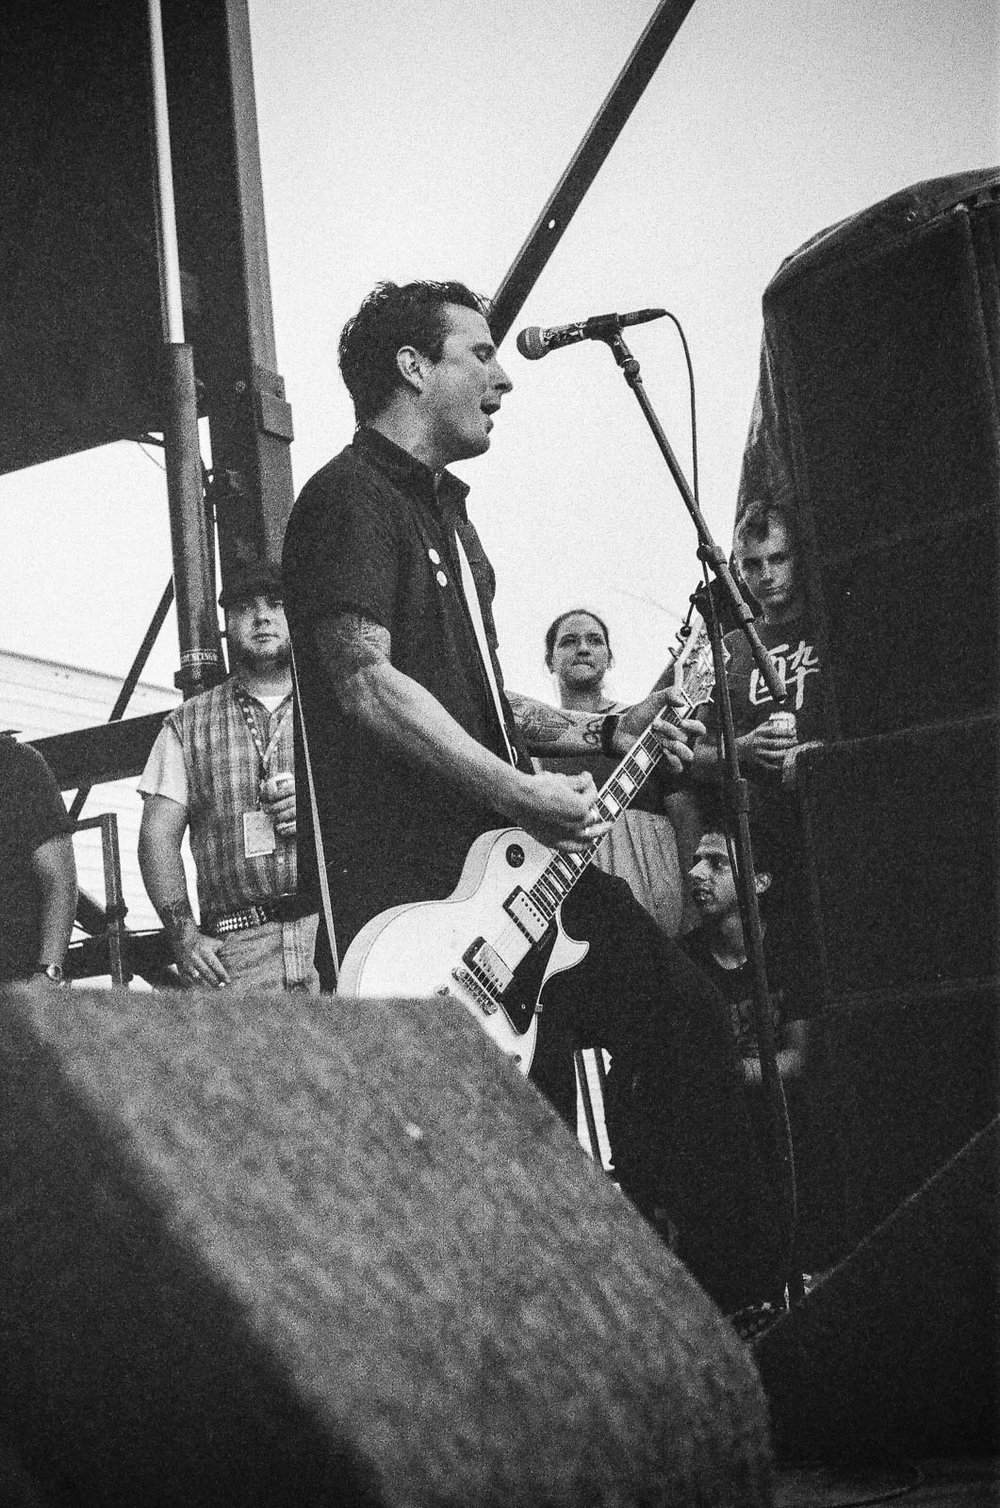 The-Bouncing-Souls-by-Edwina-Hay-000095720016.jpg